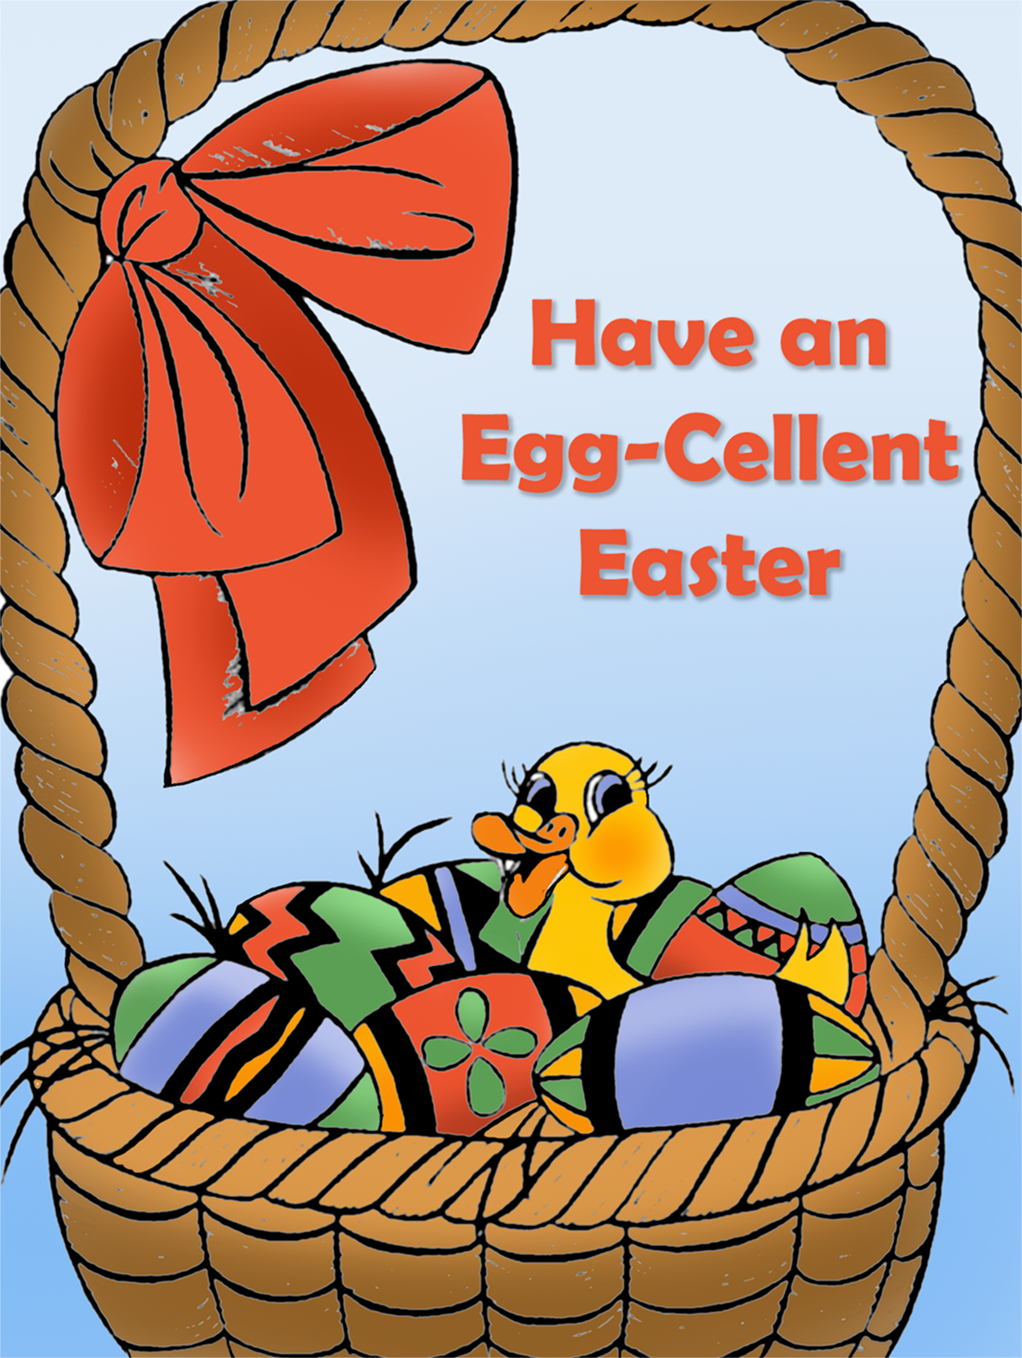 Free Easter card with duckling in a basket with eggs.